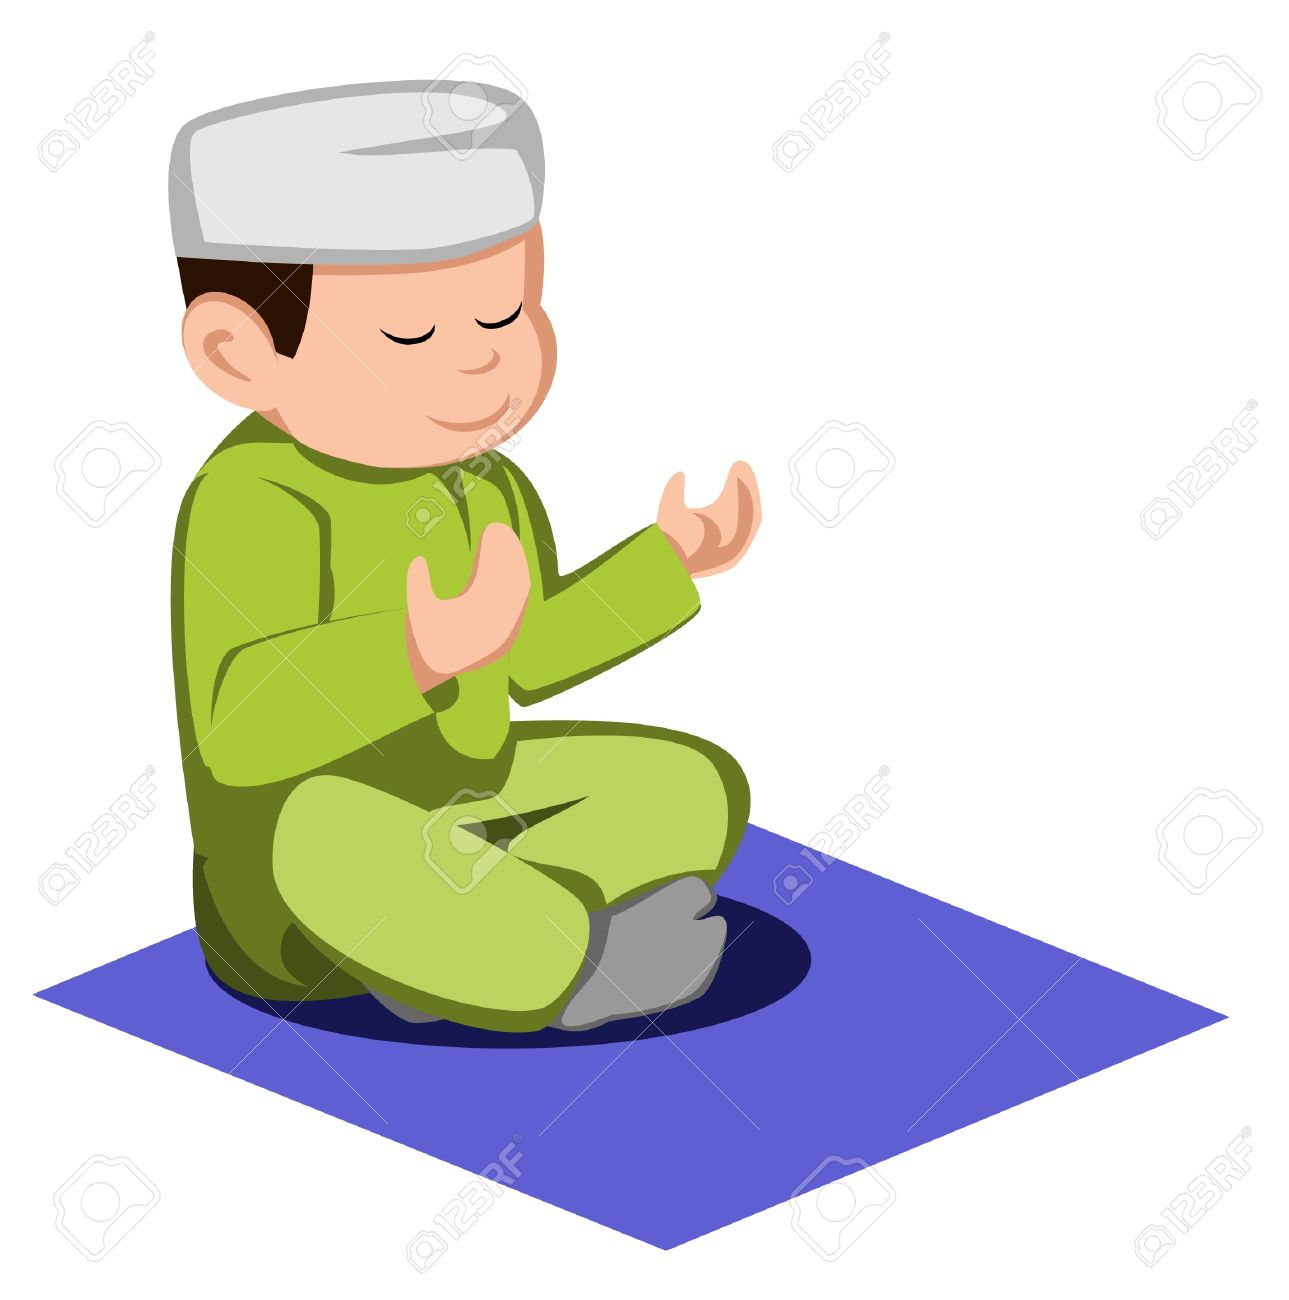 Muslim boy praying clipart.